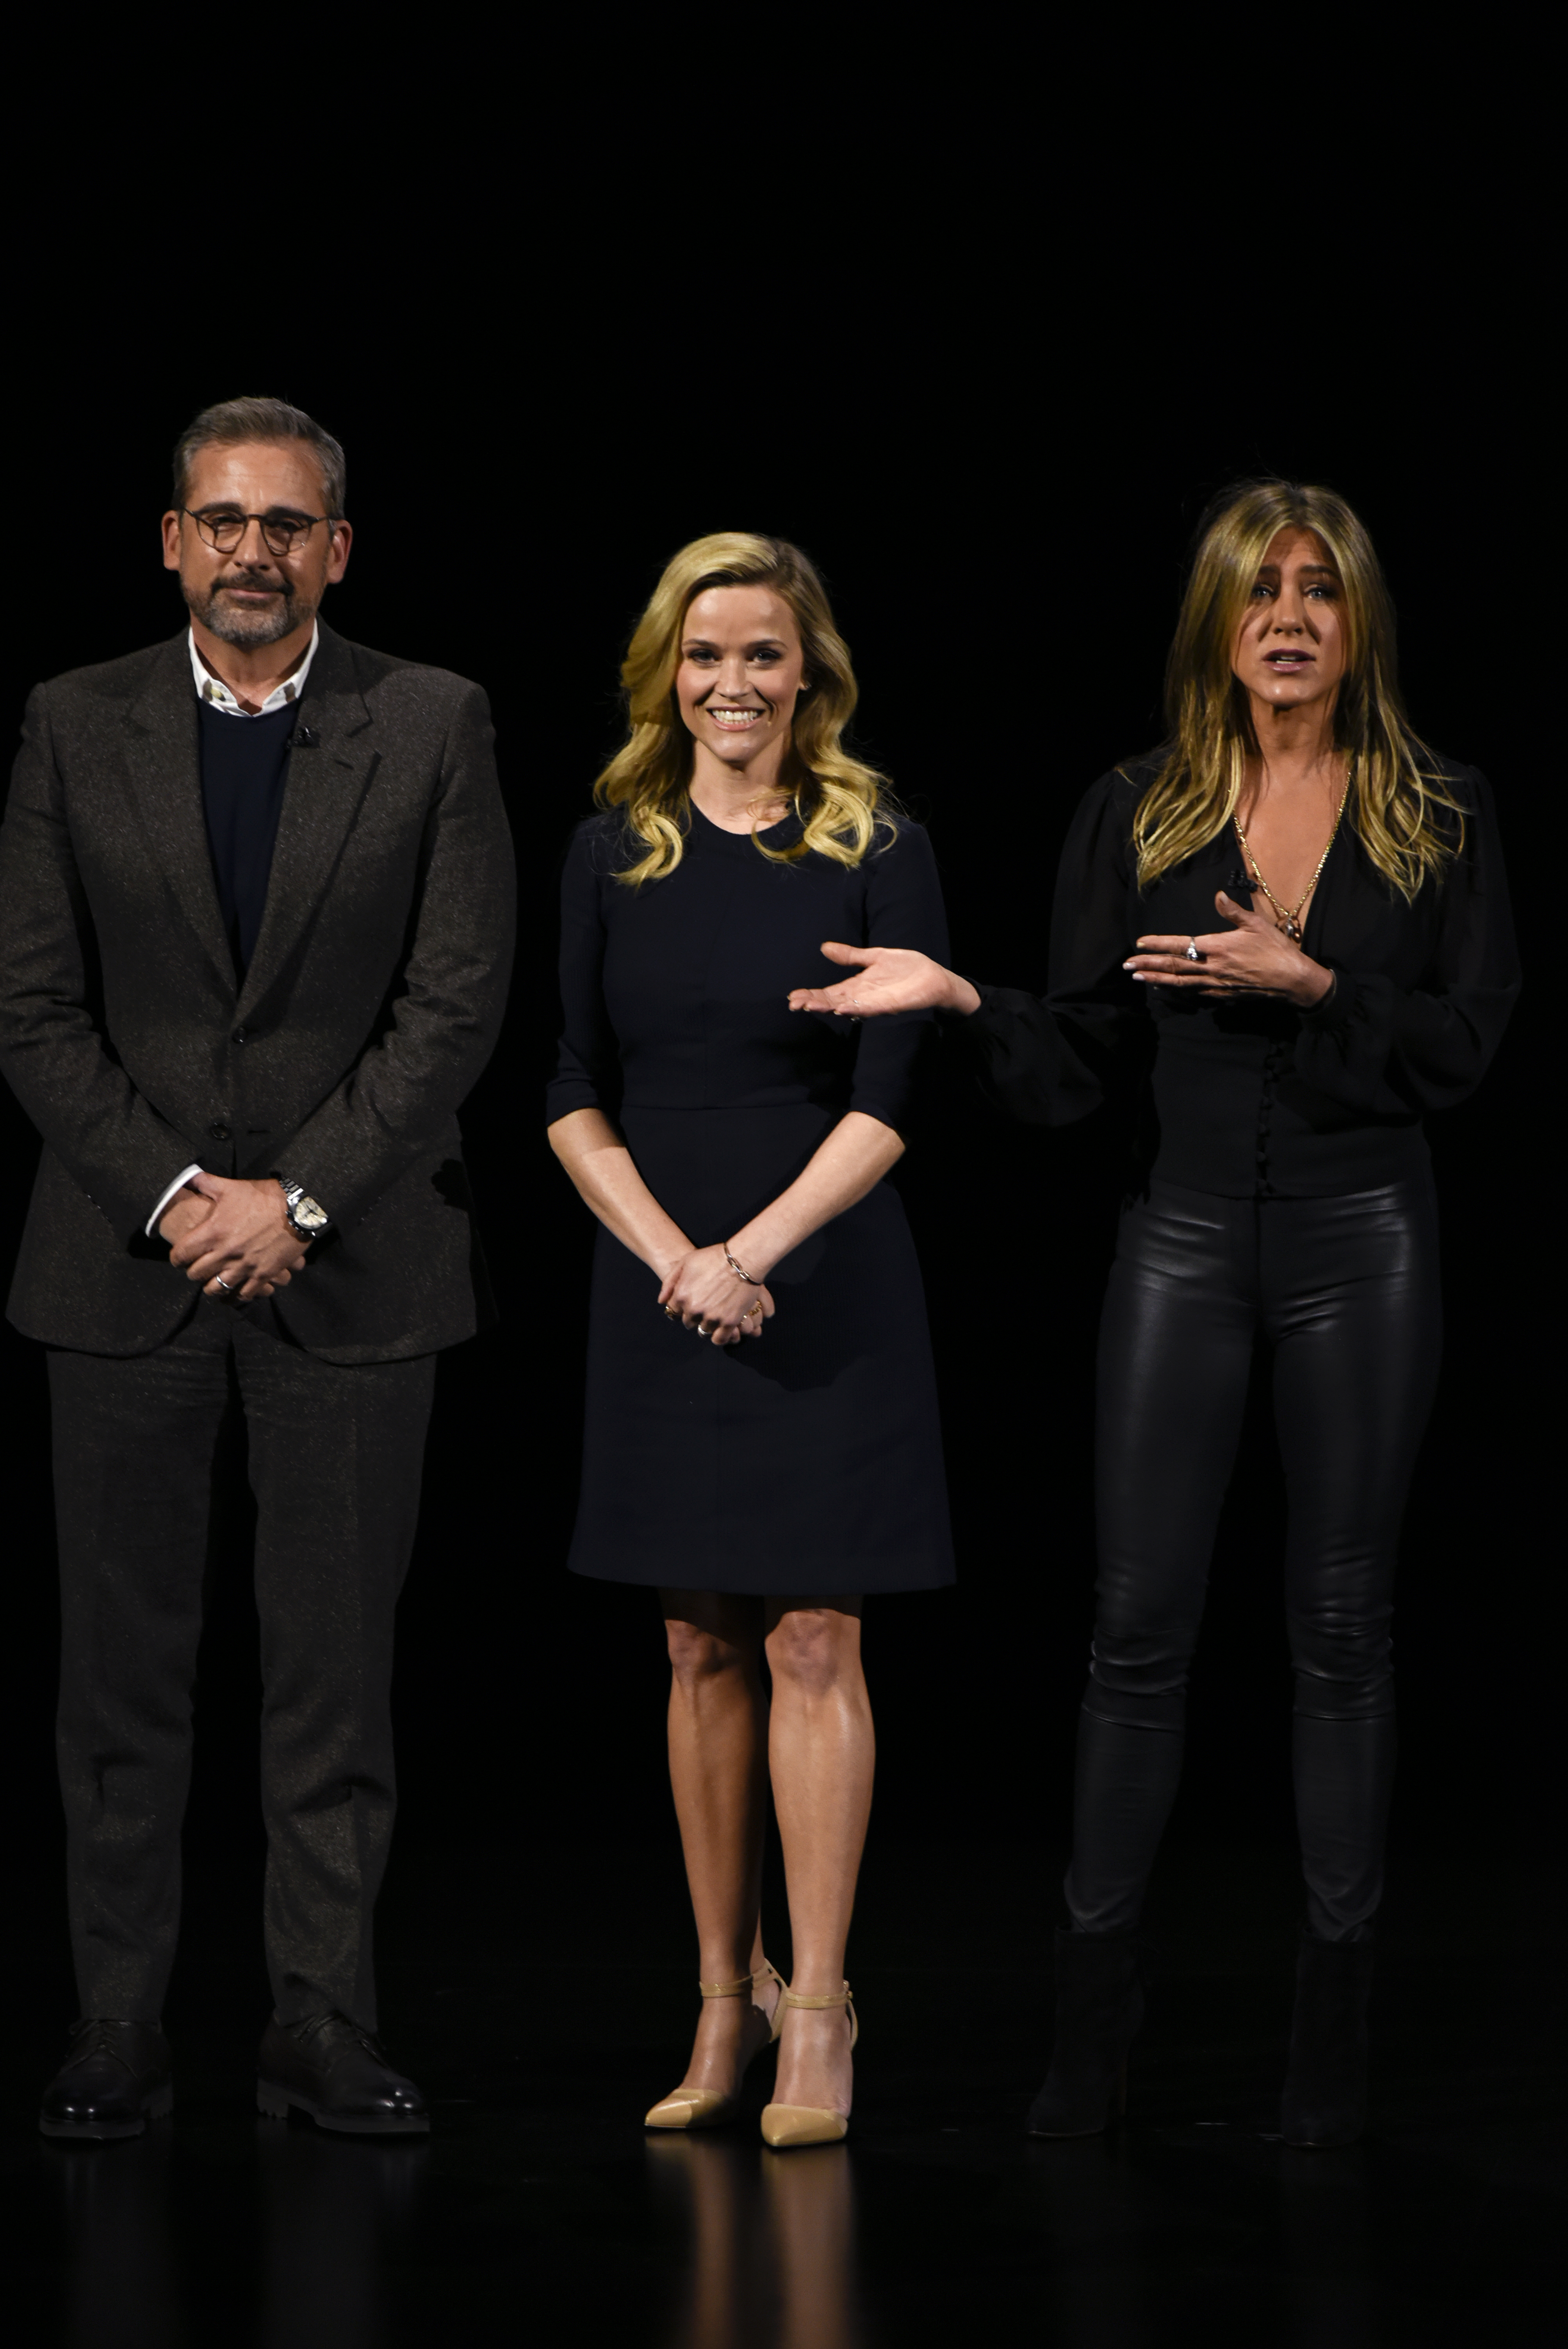 Steve Carrell, Reese Witherspoon and Jennifer Aniston